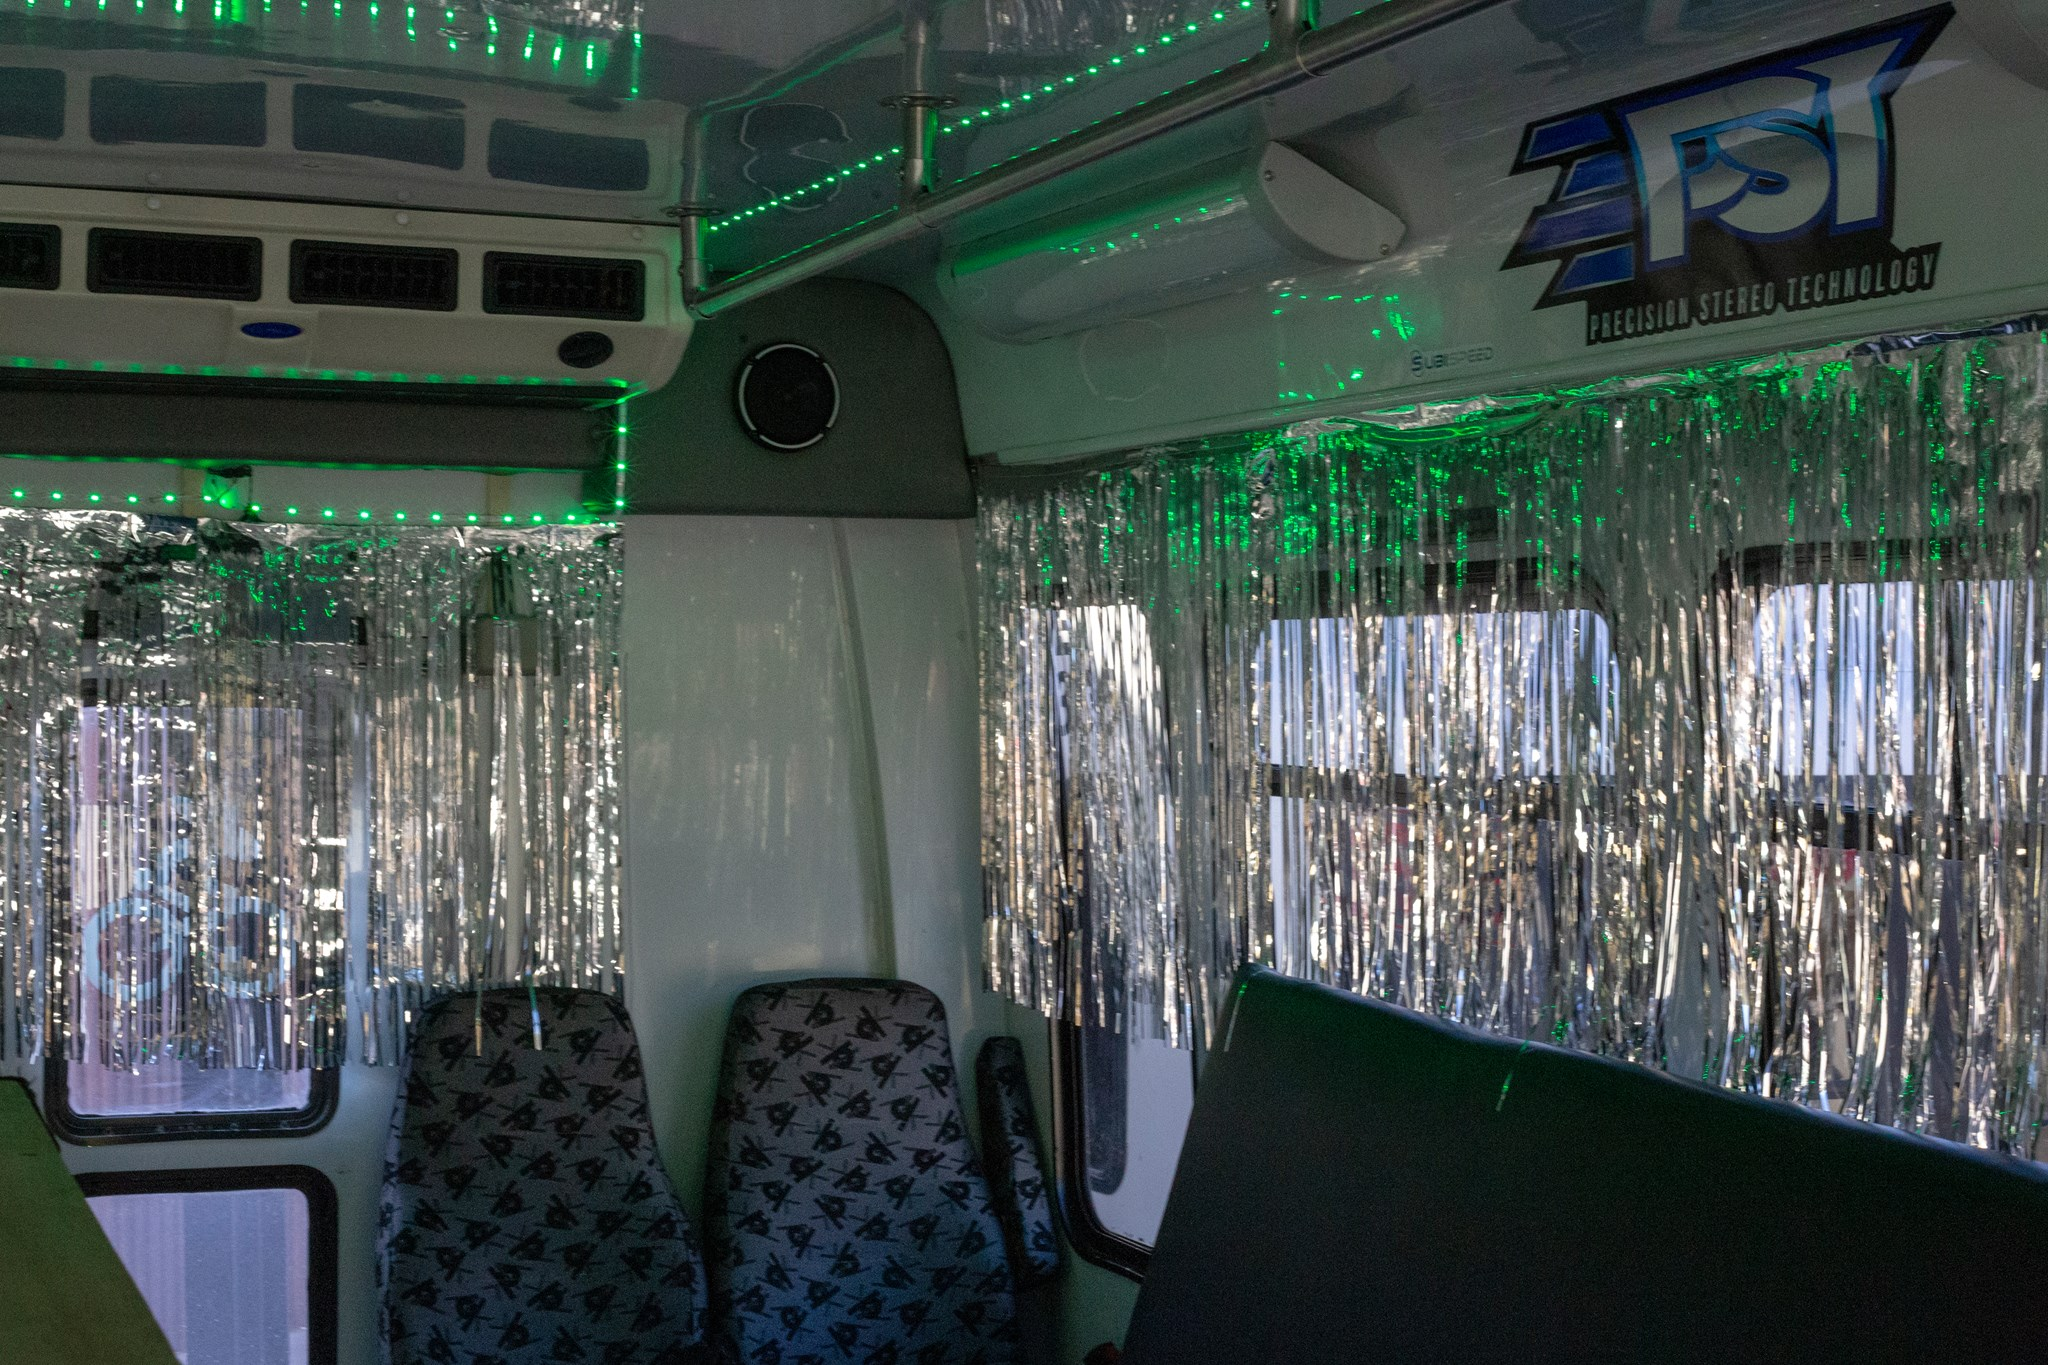 A picture of the interior of one of the busses. Green LED lights border the ceiling, glittering silver strands covering the windows, and comfortable-looking grey seats with black triangles.